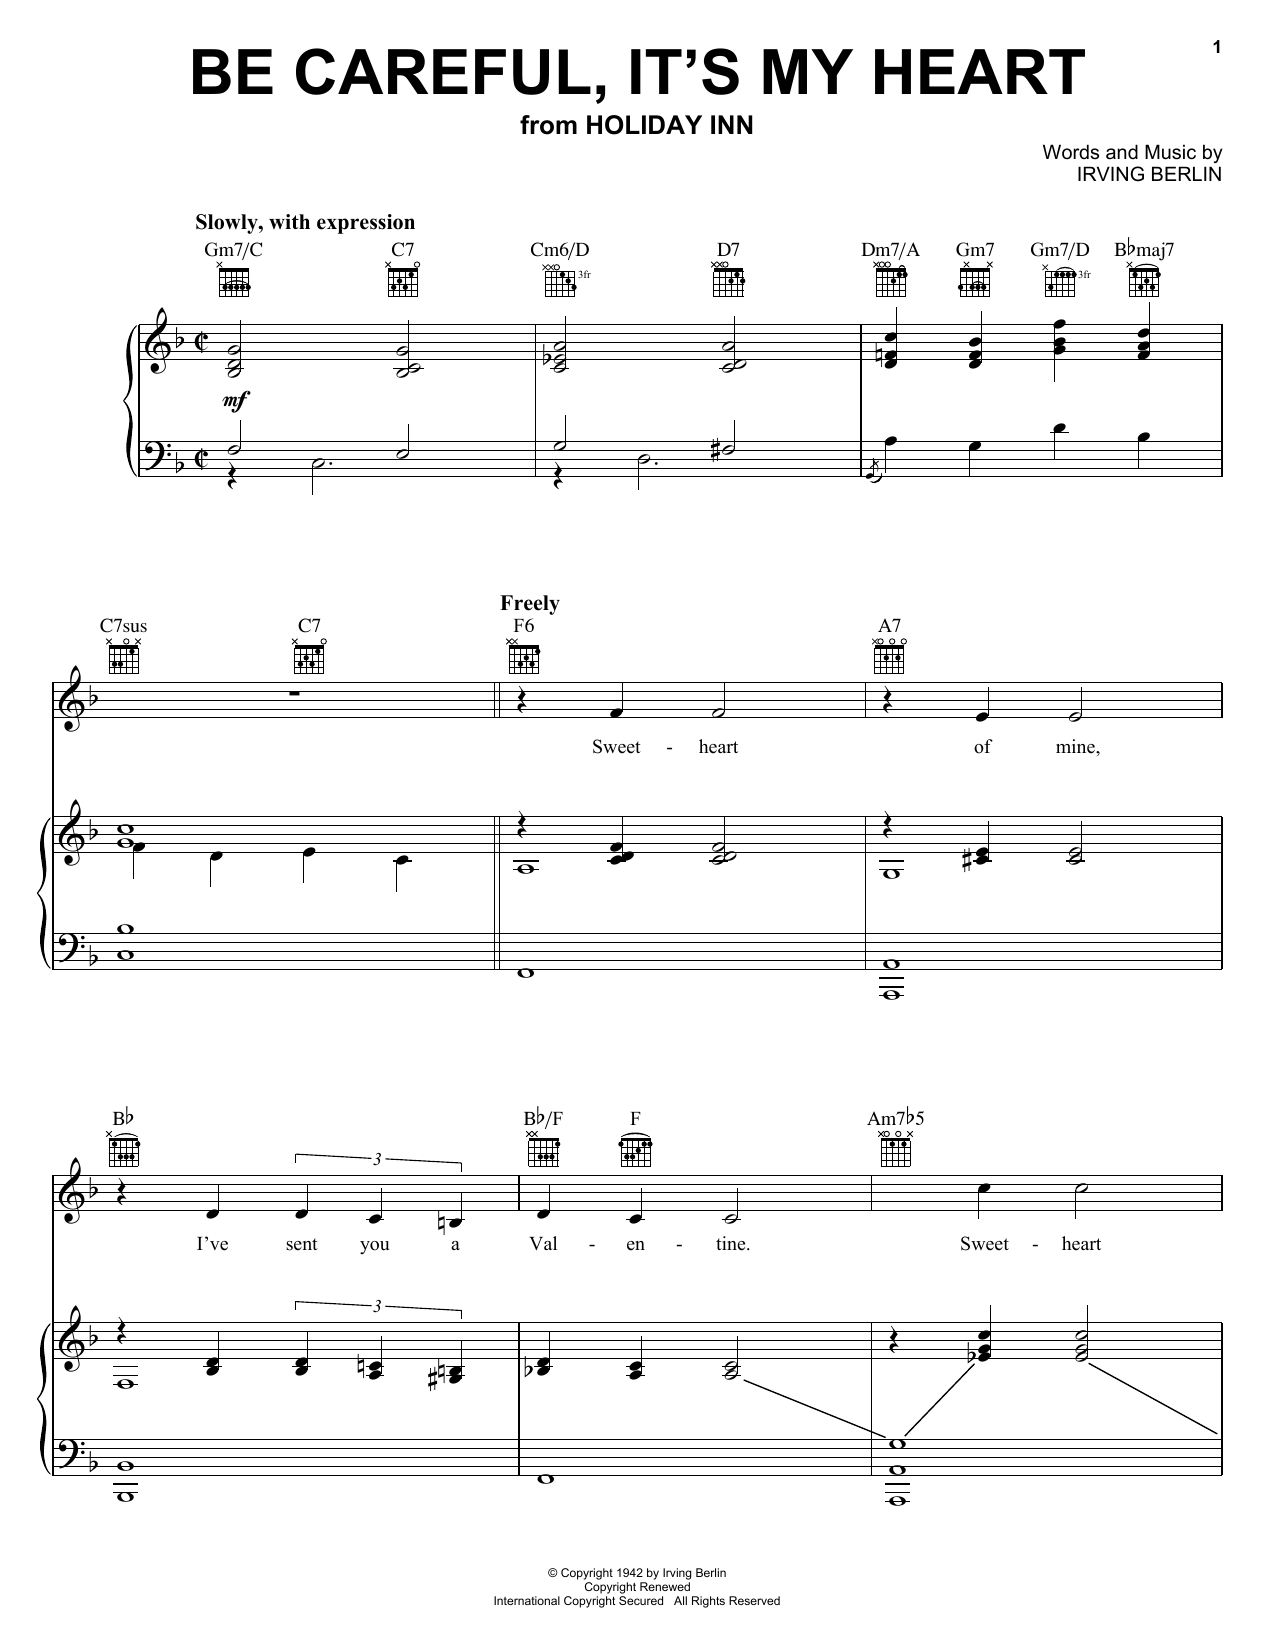 Irving Berlin Be Careful, It's My Heart sheet music notes and chords